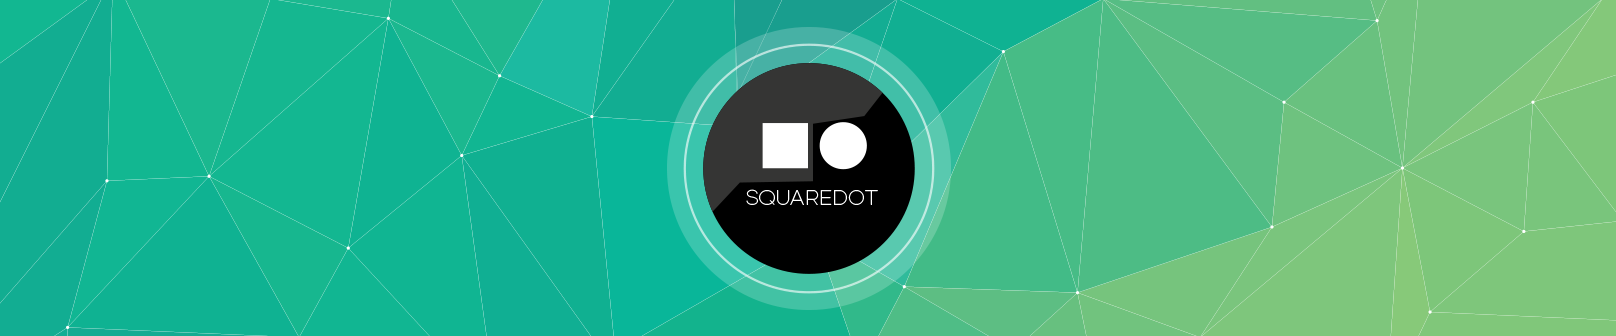 Squaredot, Best B2b Inbound Marketing Agency in Dublin.